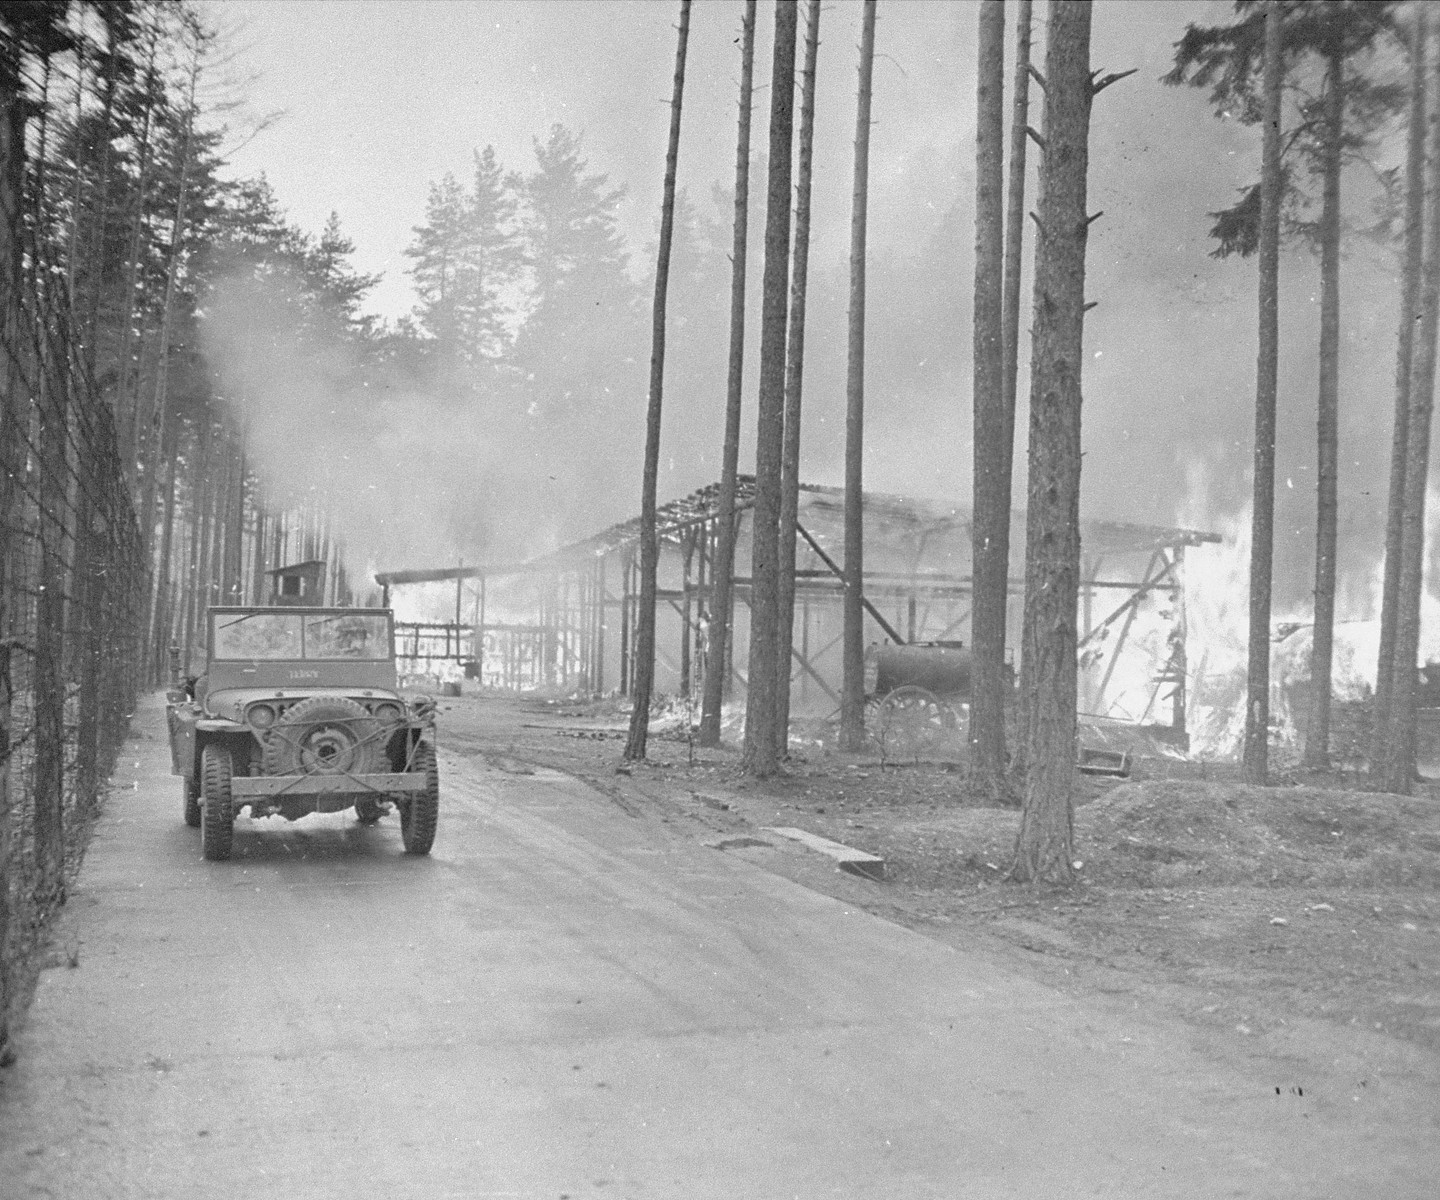 An American soldier drives past buildings set afire by survivors after the SS evacuated the Ohrdruf concentration camp.